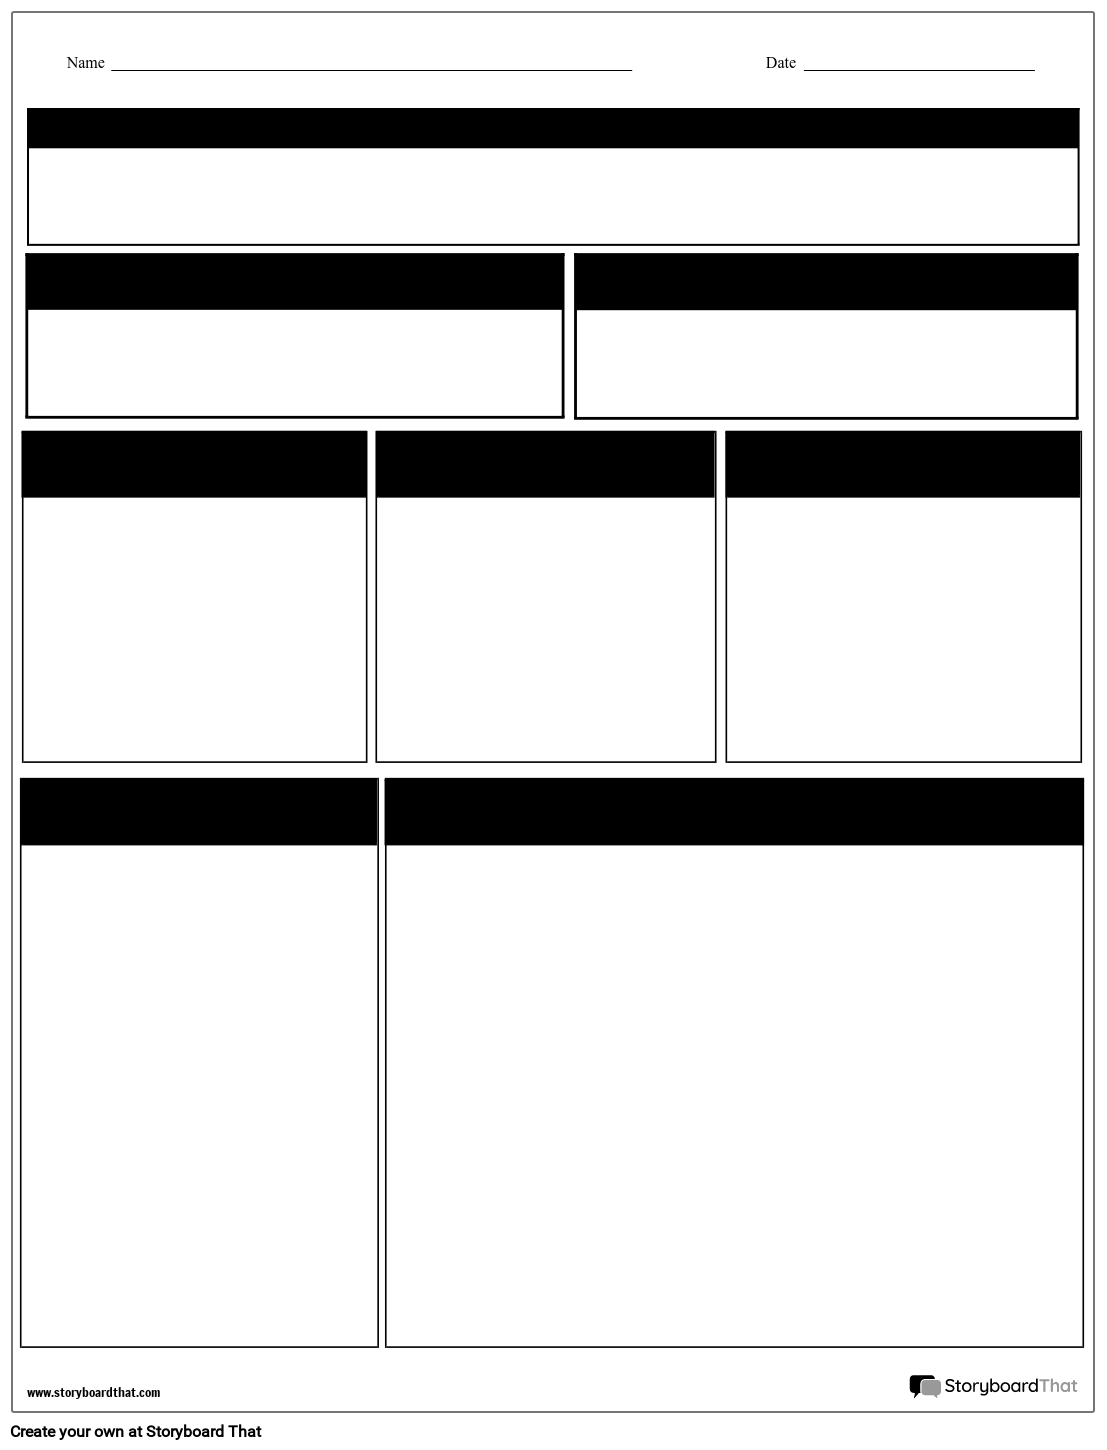 Foundation Experimental Design Sheet Storyboard in addition Control and Variable Groups   YouTube further Experimental Design Worksheet together with Protein Structure Pogil Worksheet Answers   Briefencounters together with of the Scientific Method  Worksheet Answer further Experimental Design And Scientific Variables Unit   Pinterest as well Experimental Design Worksheet together with Experimental Design Worksheet   Homedressage also FINAL Group Expenmental Design Sheet FINAL Experim      Chegg additionally Design Detectives   Identifying Experimental Variables and furthermore Scientific Method Controlled Experiment Activity   2 Versions moreover High Biology Controlled Experiment Worksheets  d34e7d7b0c50 besides Variables In An Experiment Worksheet   Free Printables Worksheet in addition Germination worksheet 1   Experiment 1 Design Worksheet SEED TYPE 1 moreover Bart Simpson Controls And Variables With Answers moreover Celery Science  Kids Design Their Own Experiments   Scholastic. on designing a controlled experiment worksheet